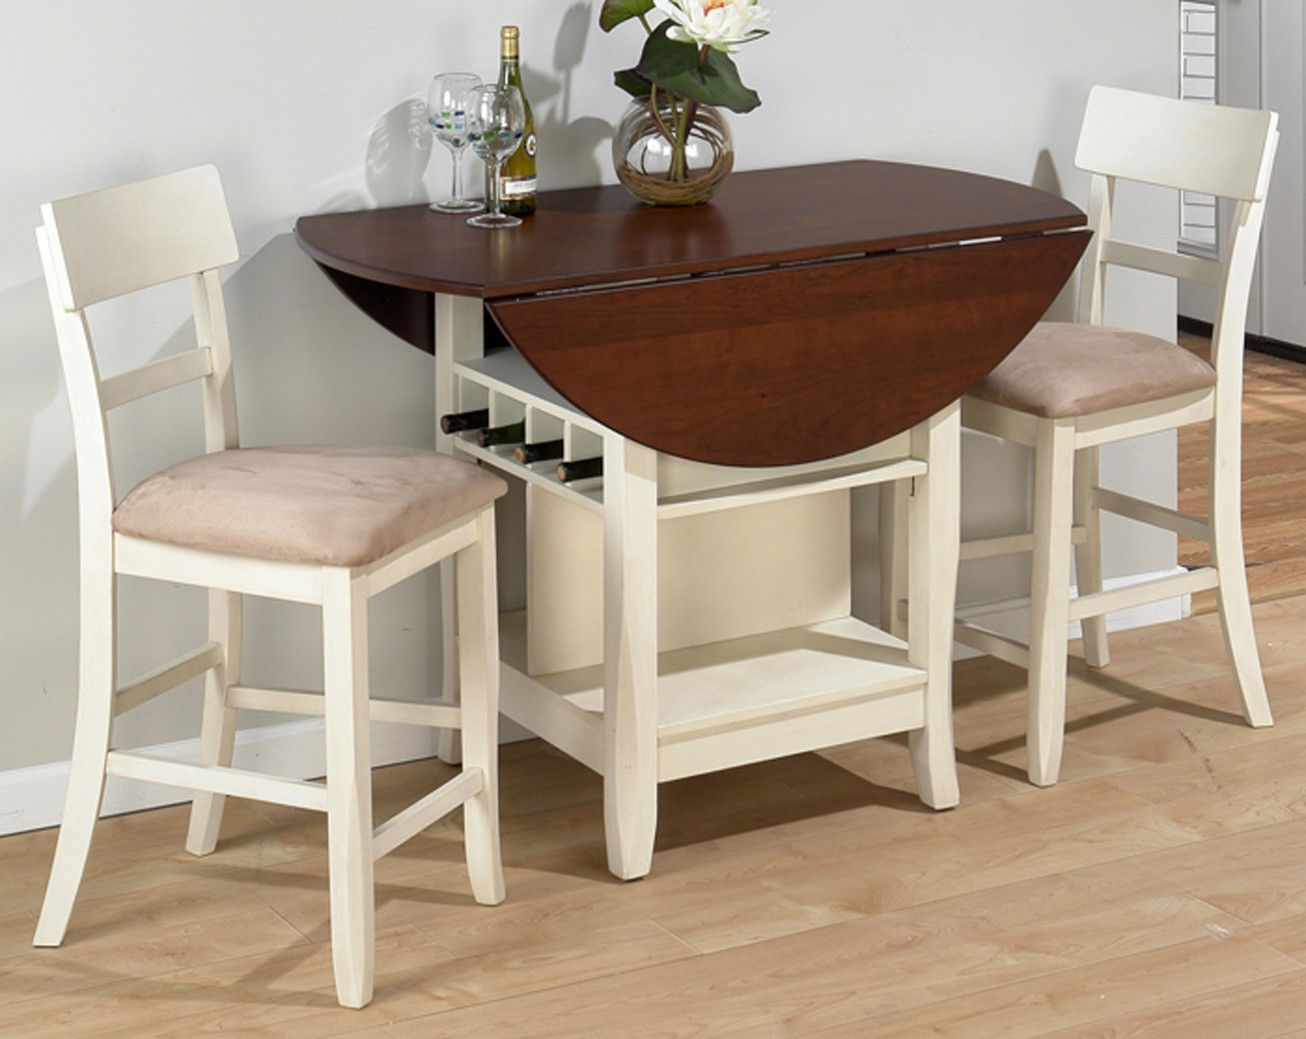 Compact Dining Space Arrangement With Drop Leaf Dining Table For